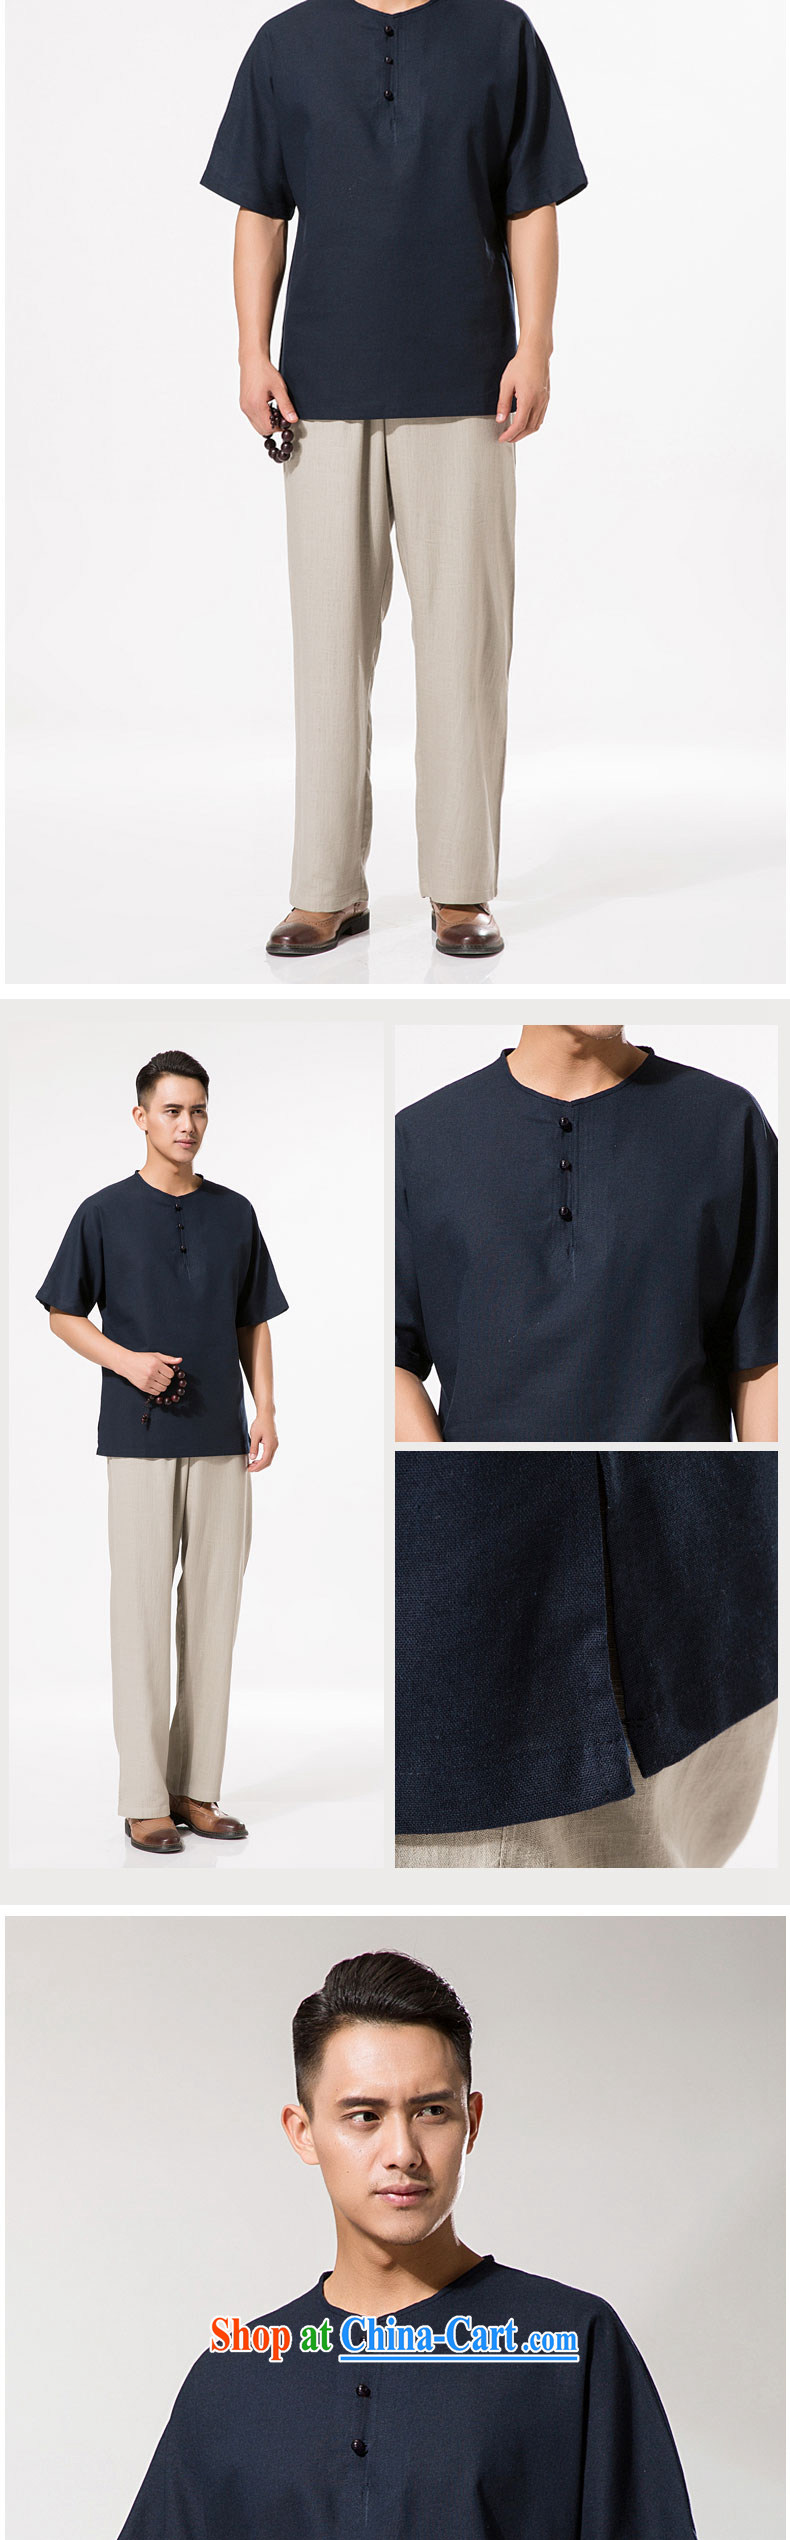 New summer China wind men's round-collar and cotton the Chinese cotton Ma short-sleeved shirt relaxed and comfortable cotton Ma men short-sleeve T-shirt dark blue XXXL/190 pictures, price, brand platters! Elections are good character, the national distribution, so why buy now enjoy more preferential! Health